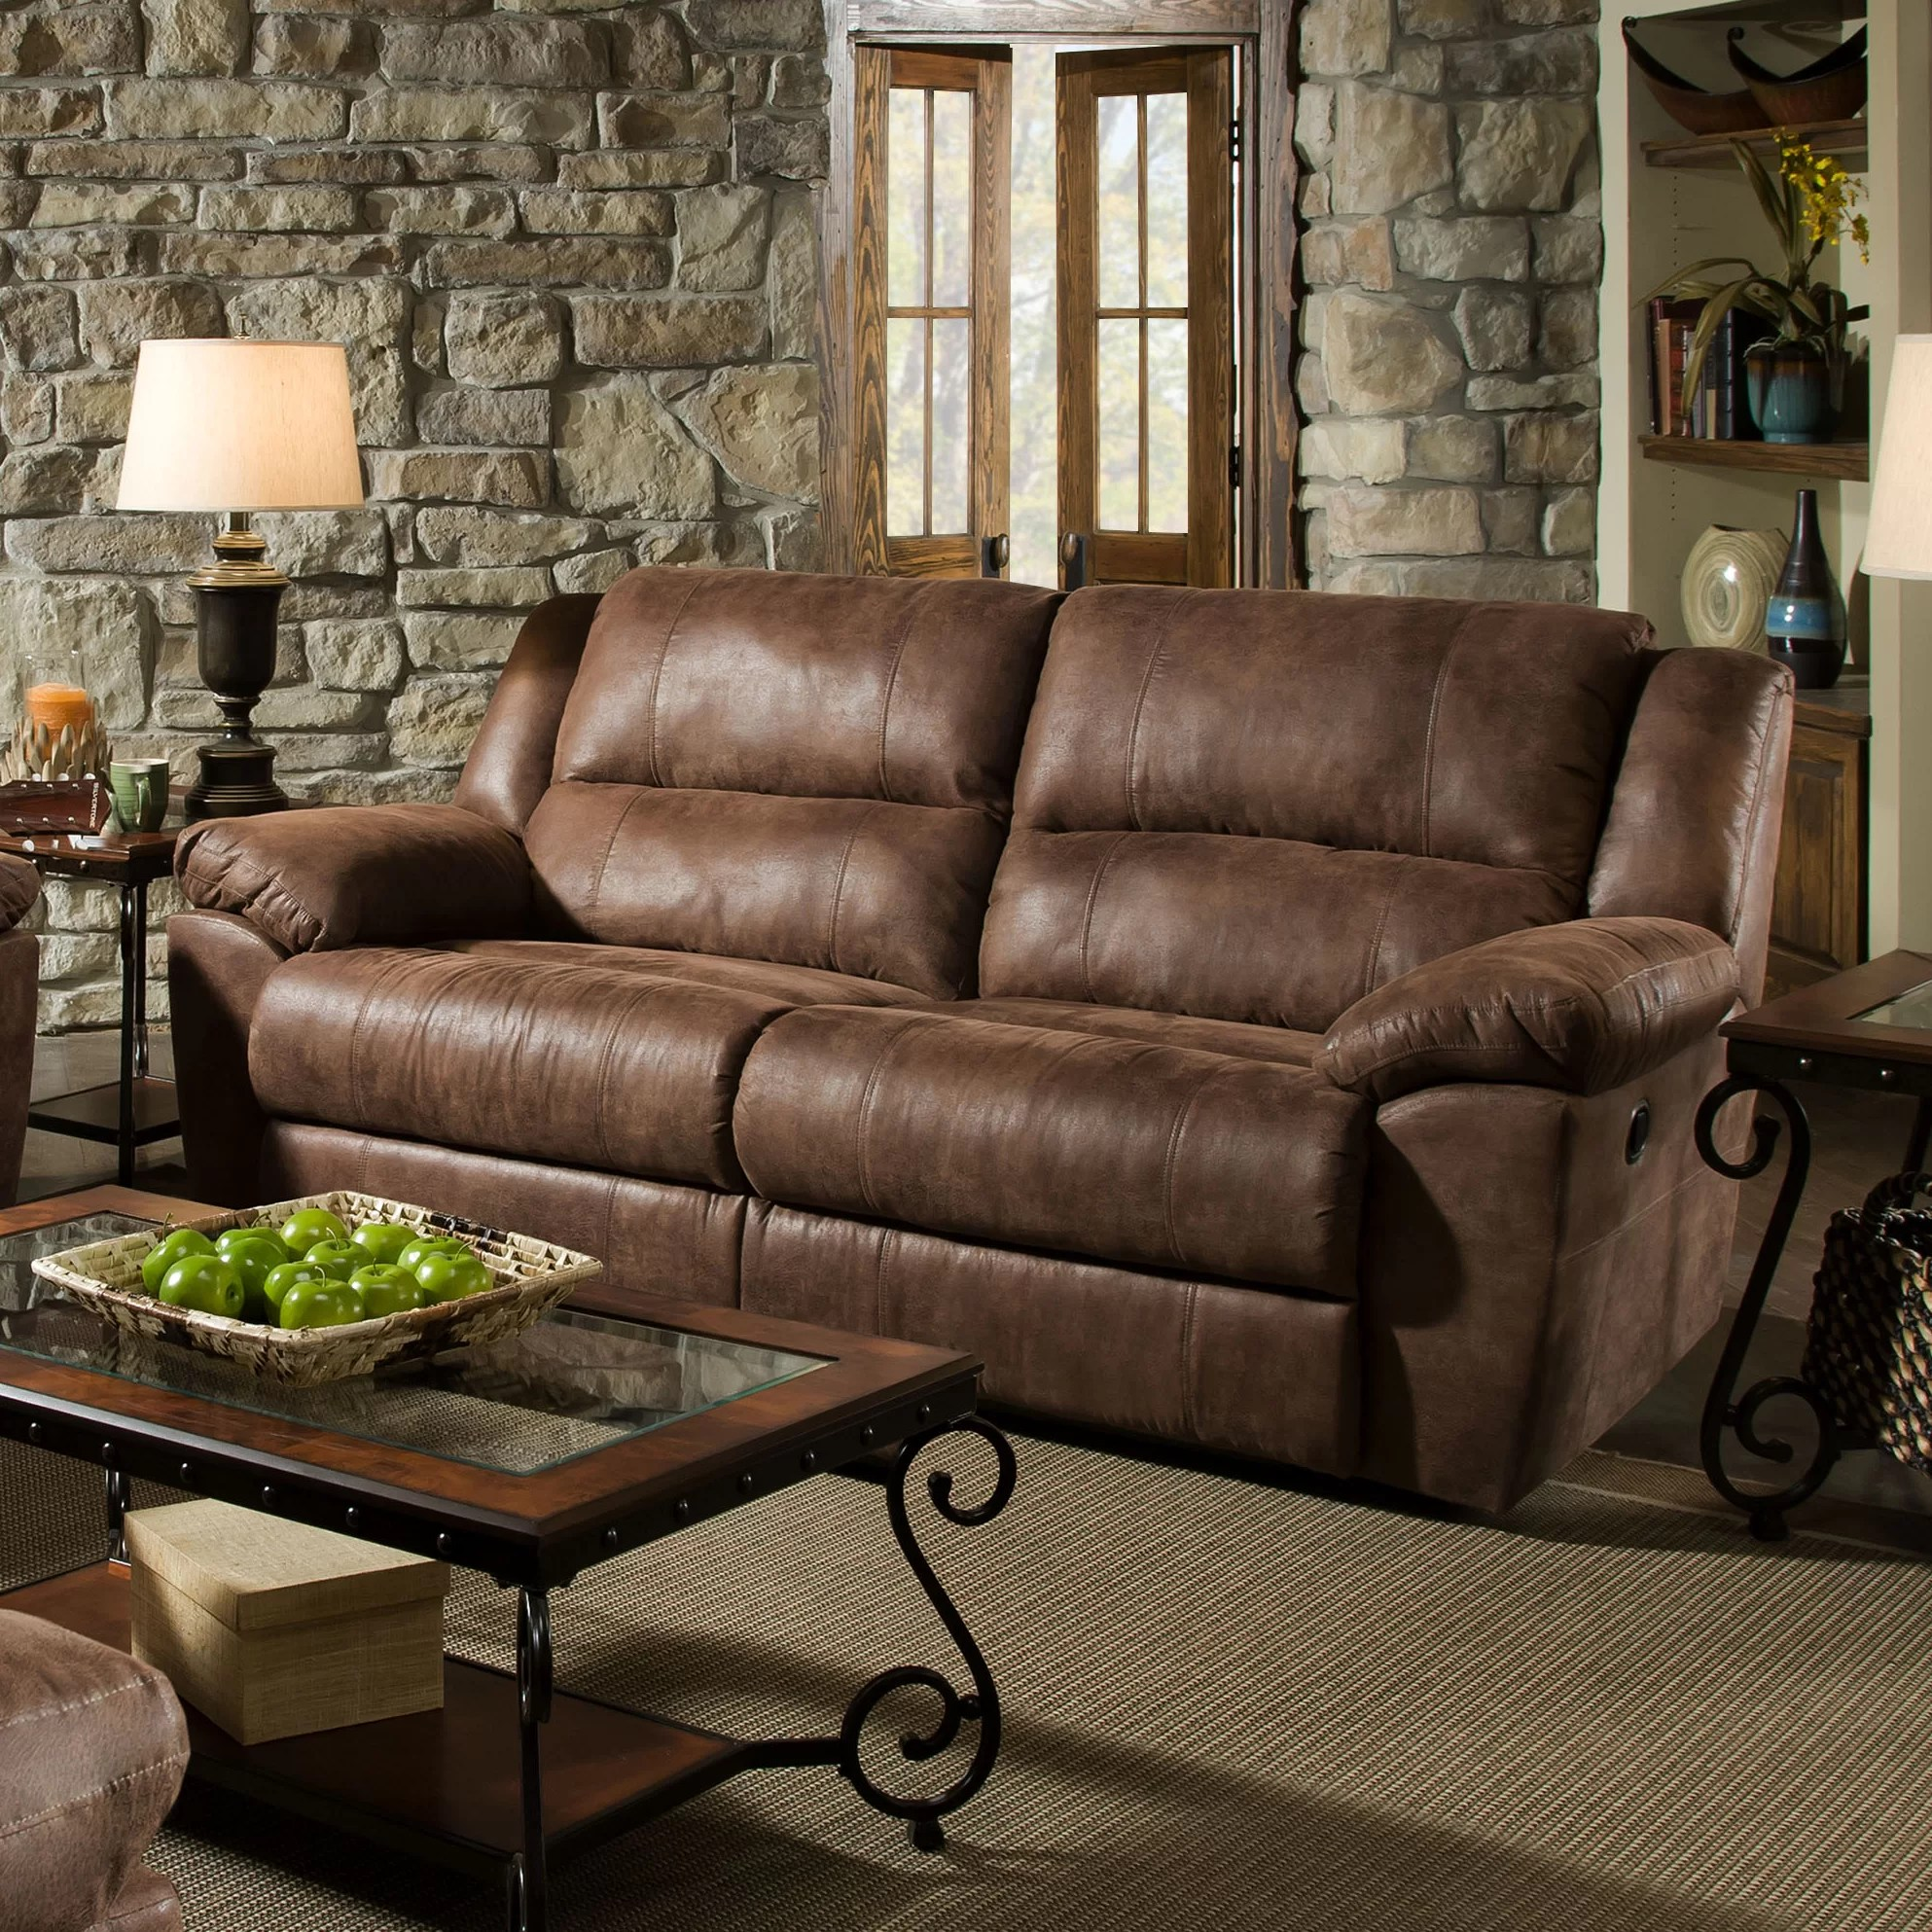 simmons beautyrest motion sofa reviews minnie mouse flip open with slumber upholstery phoenix mocha double